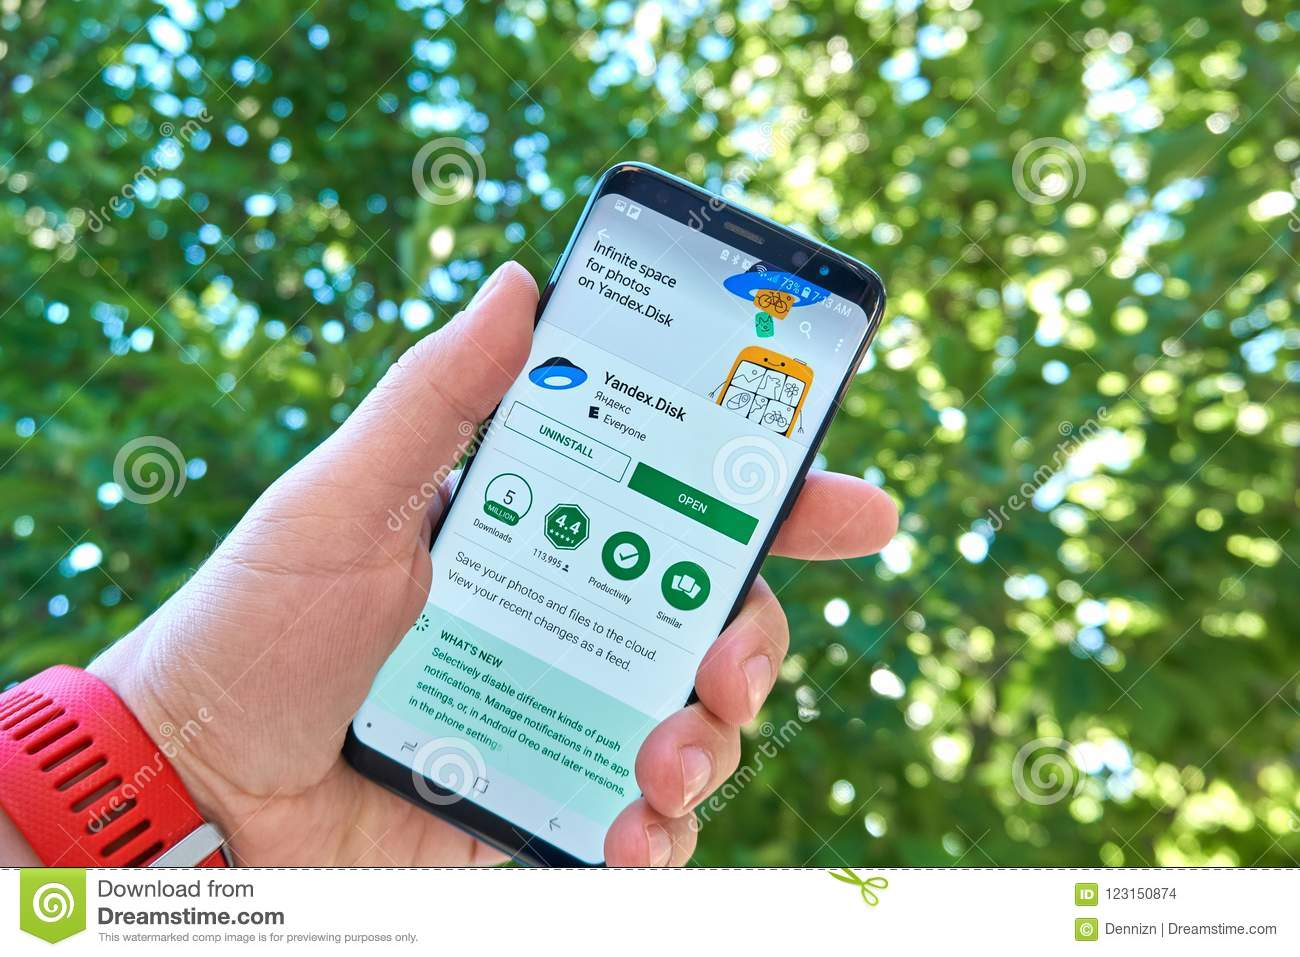 Yandex Disk Mobile App On Samsung S8  Editorial Stock Image - Image